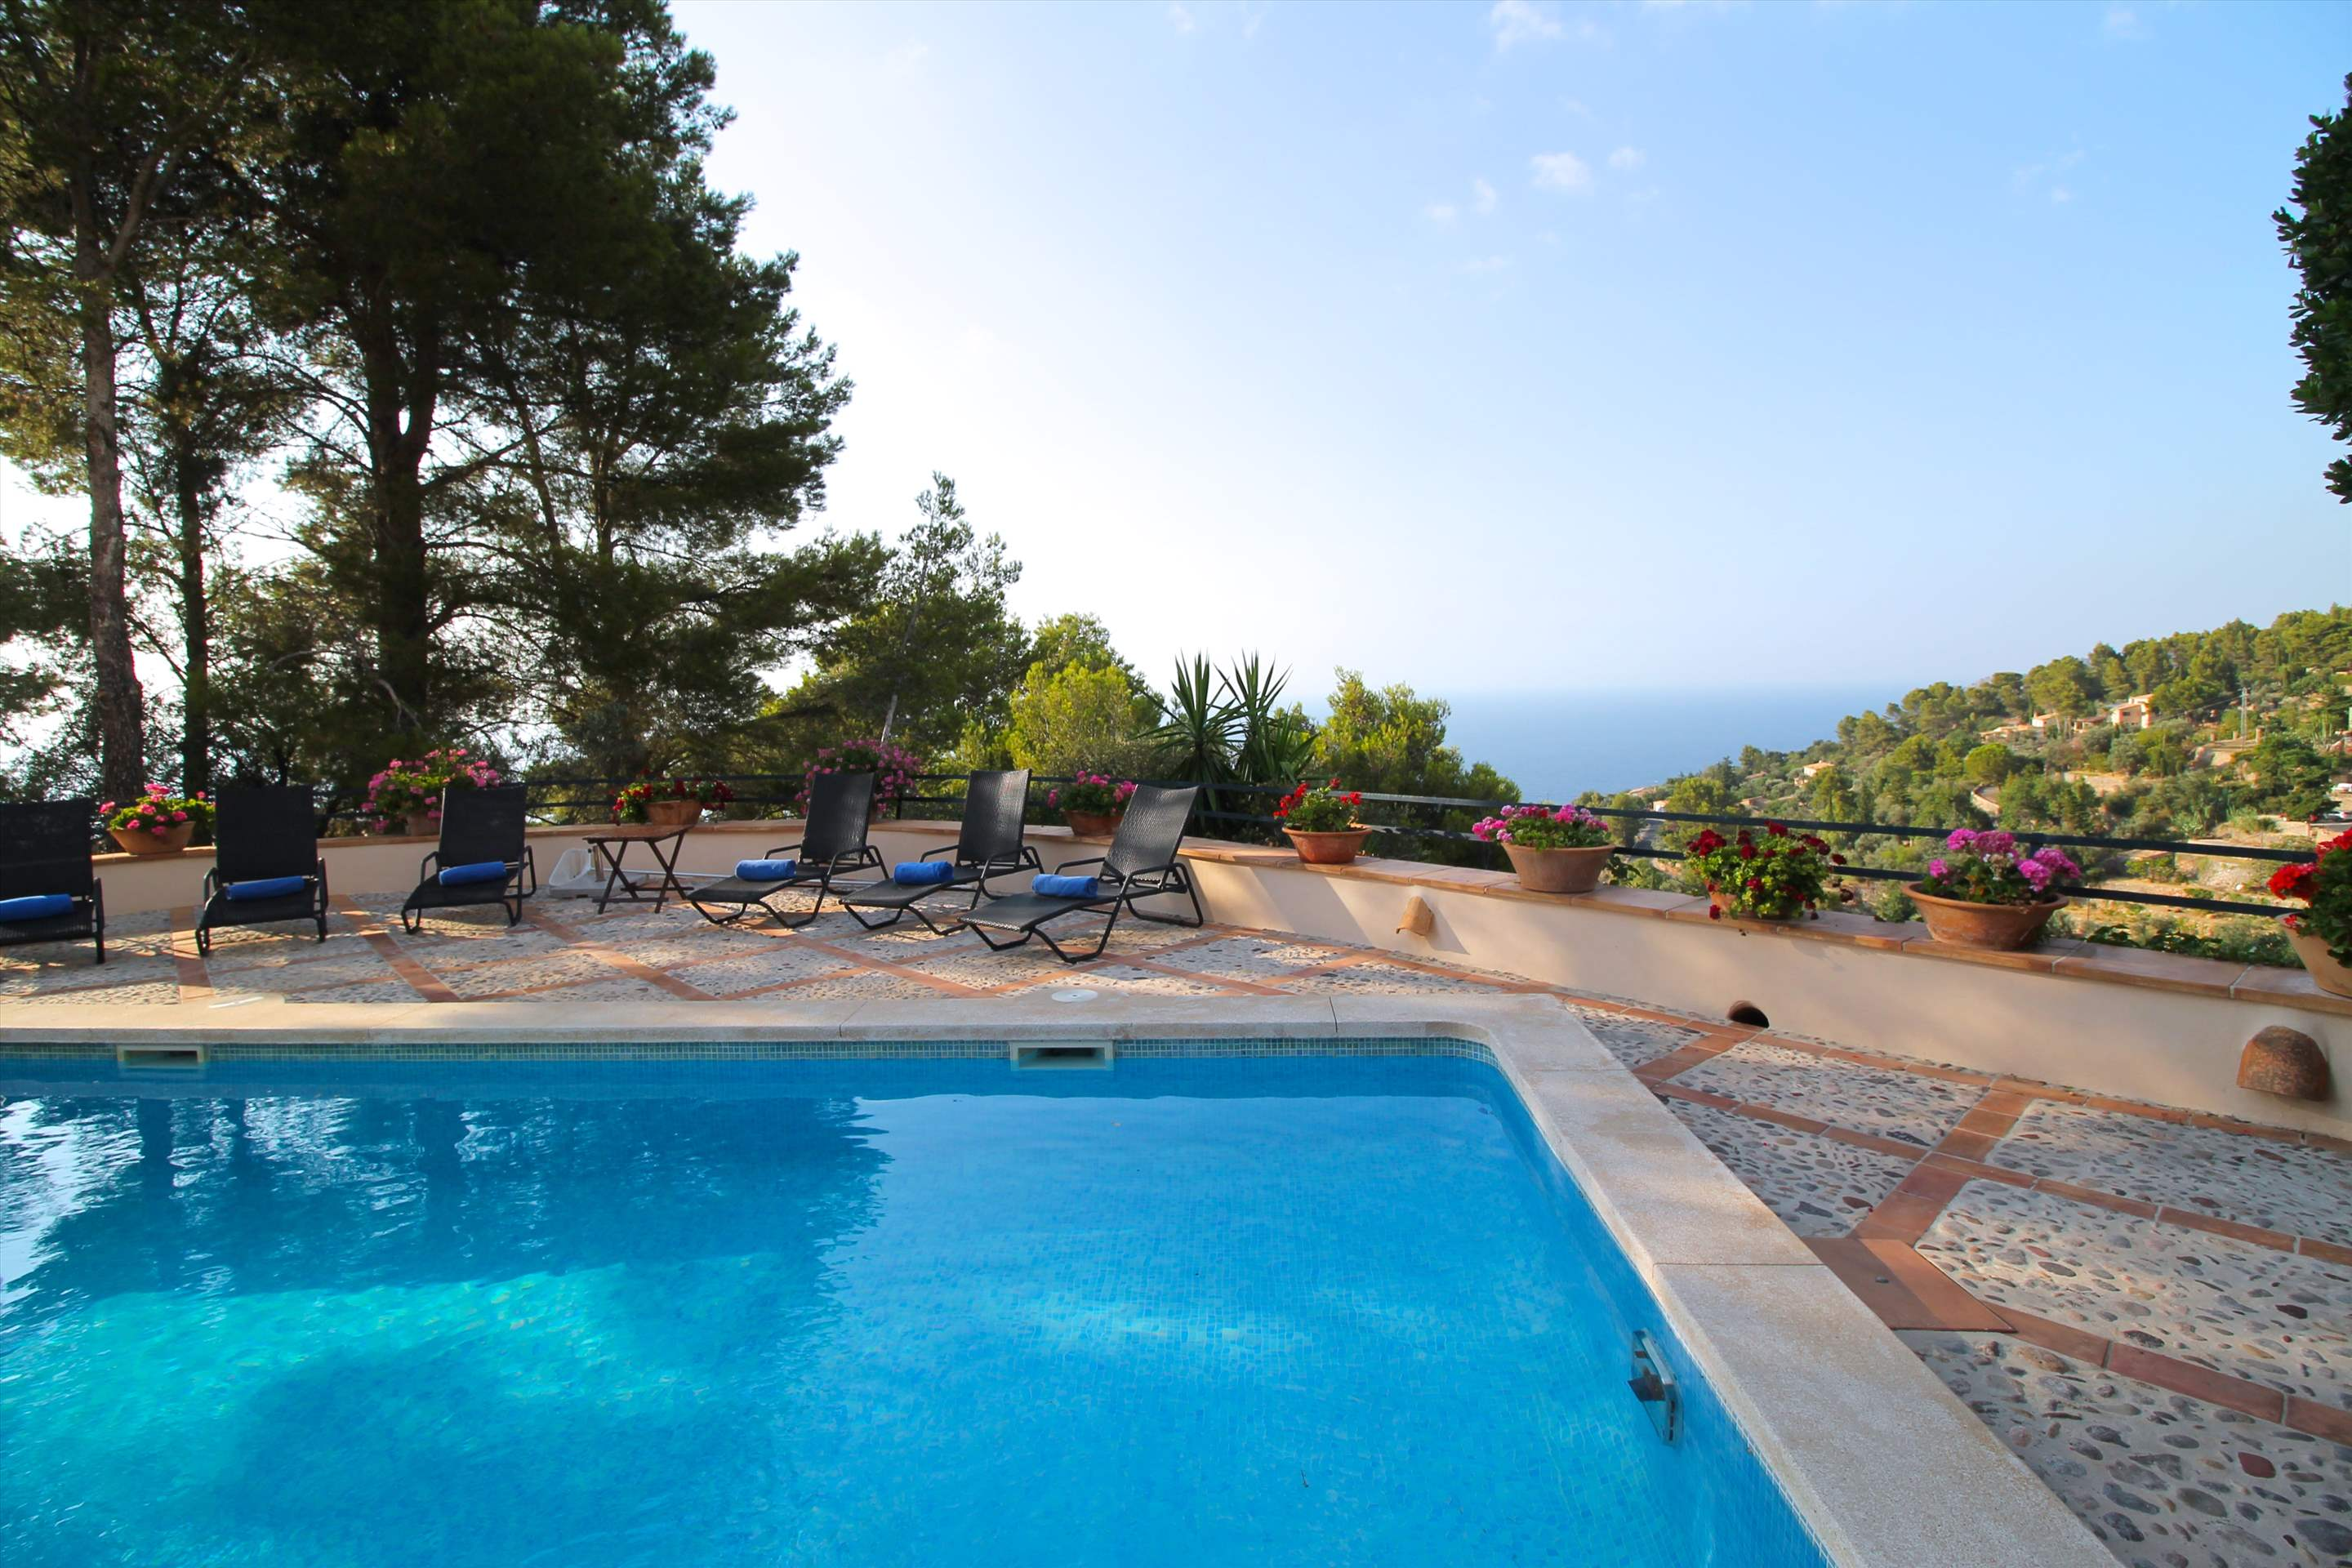 Can Winando, 4 Bedroom Rental, 4 bedroom villa in Soller & Deia, Majorca Photo #2